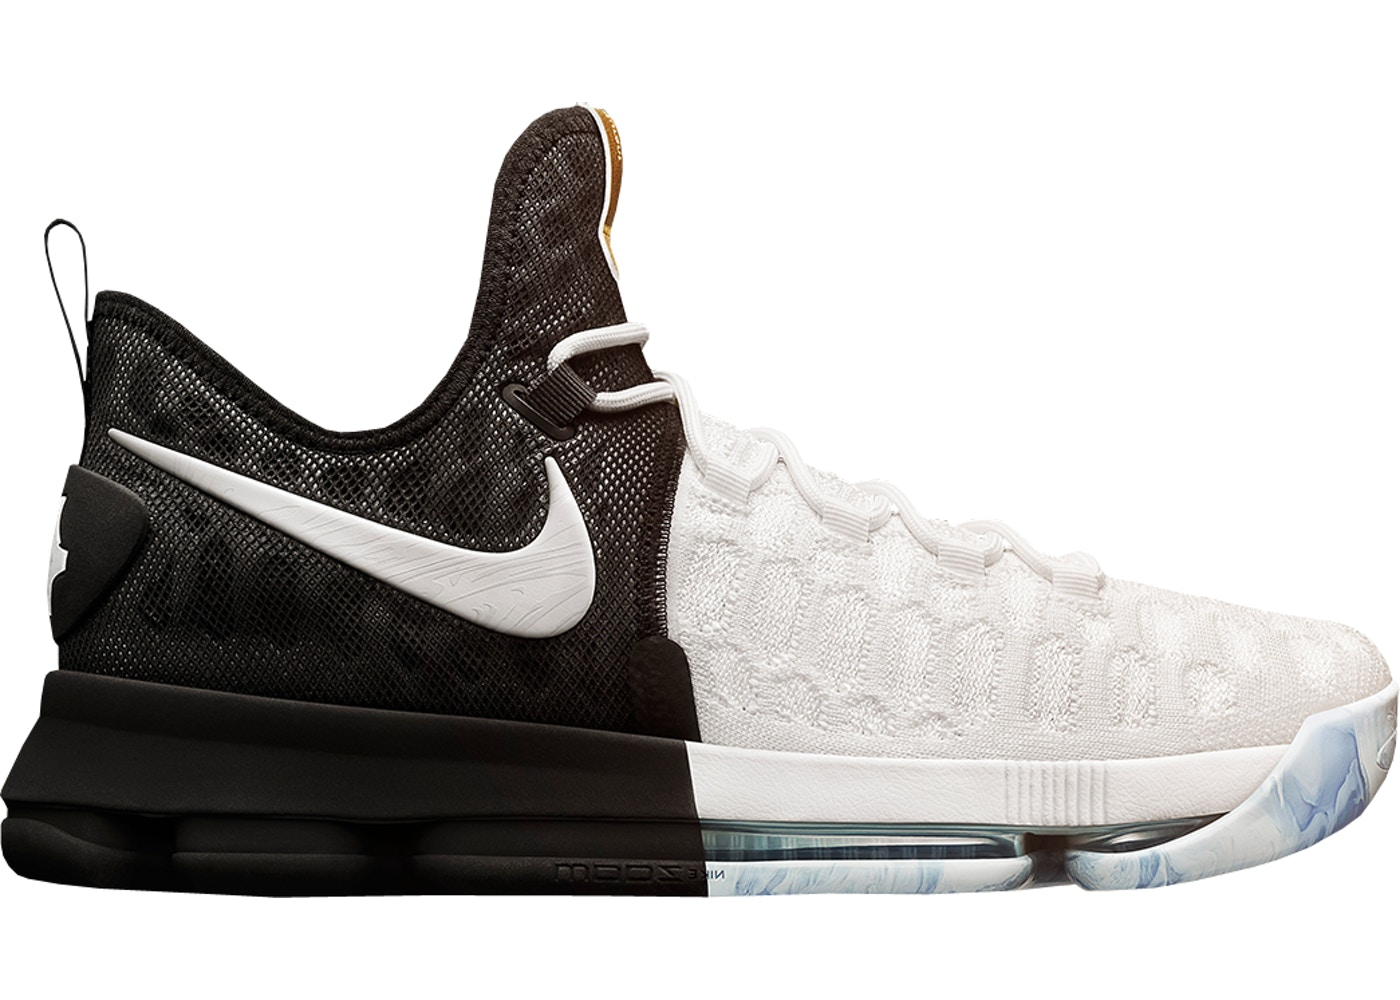 new style 49d0e c06d4 Buy Nike KD 9 Shoes & Deadstock Sneakers